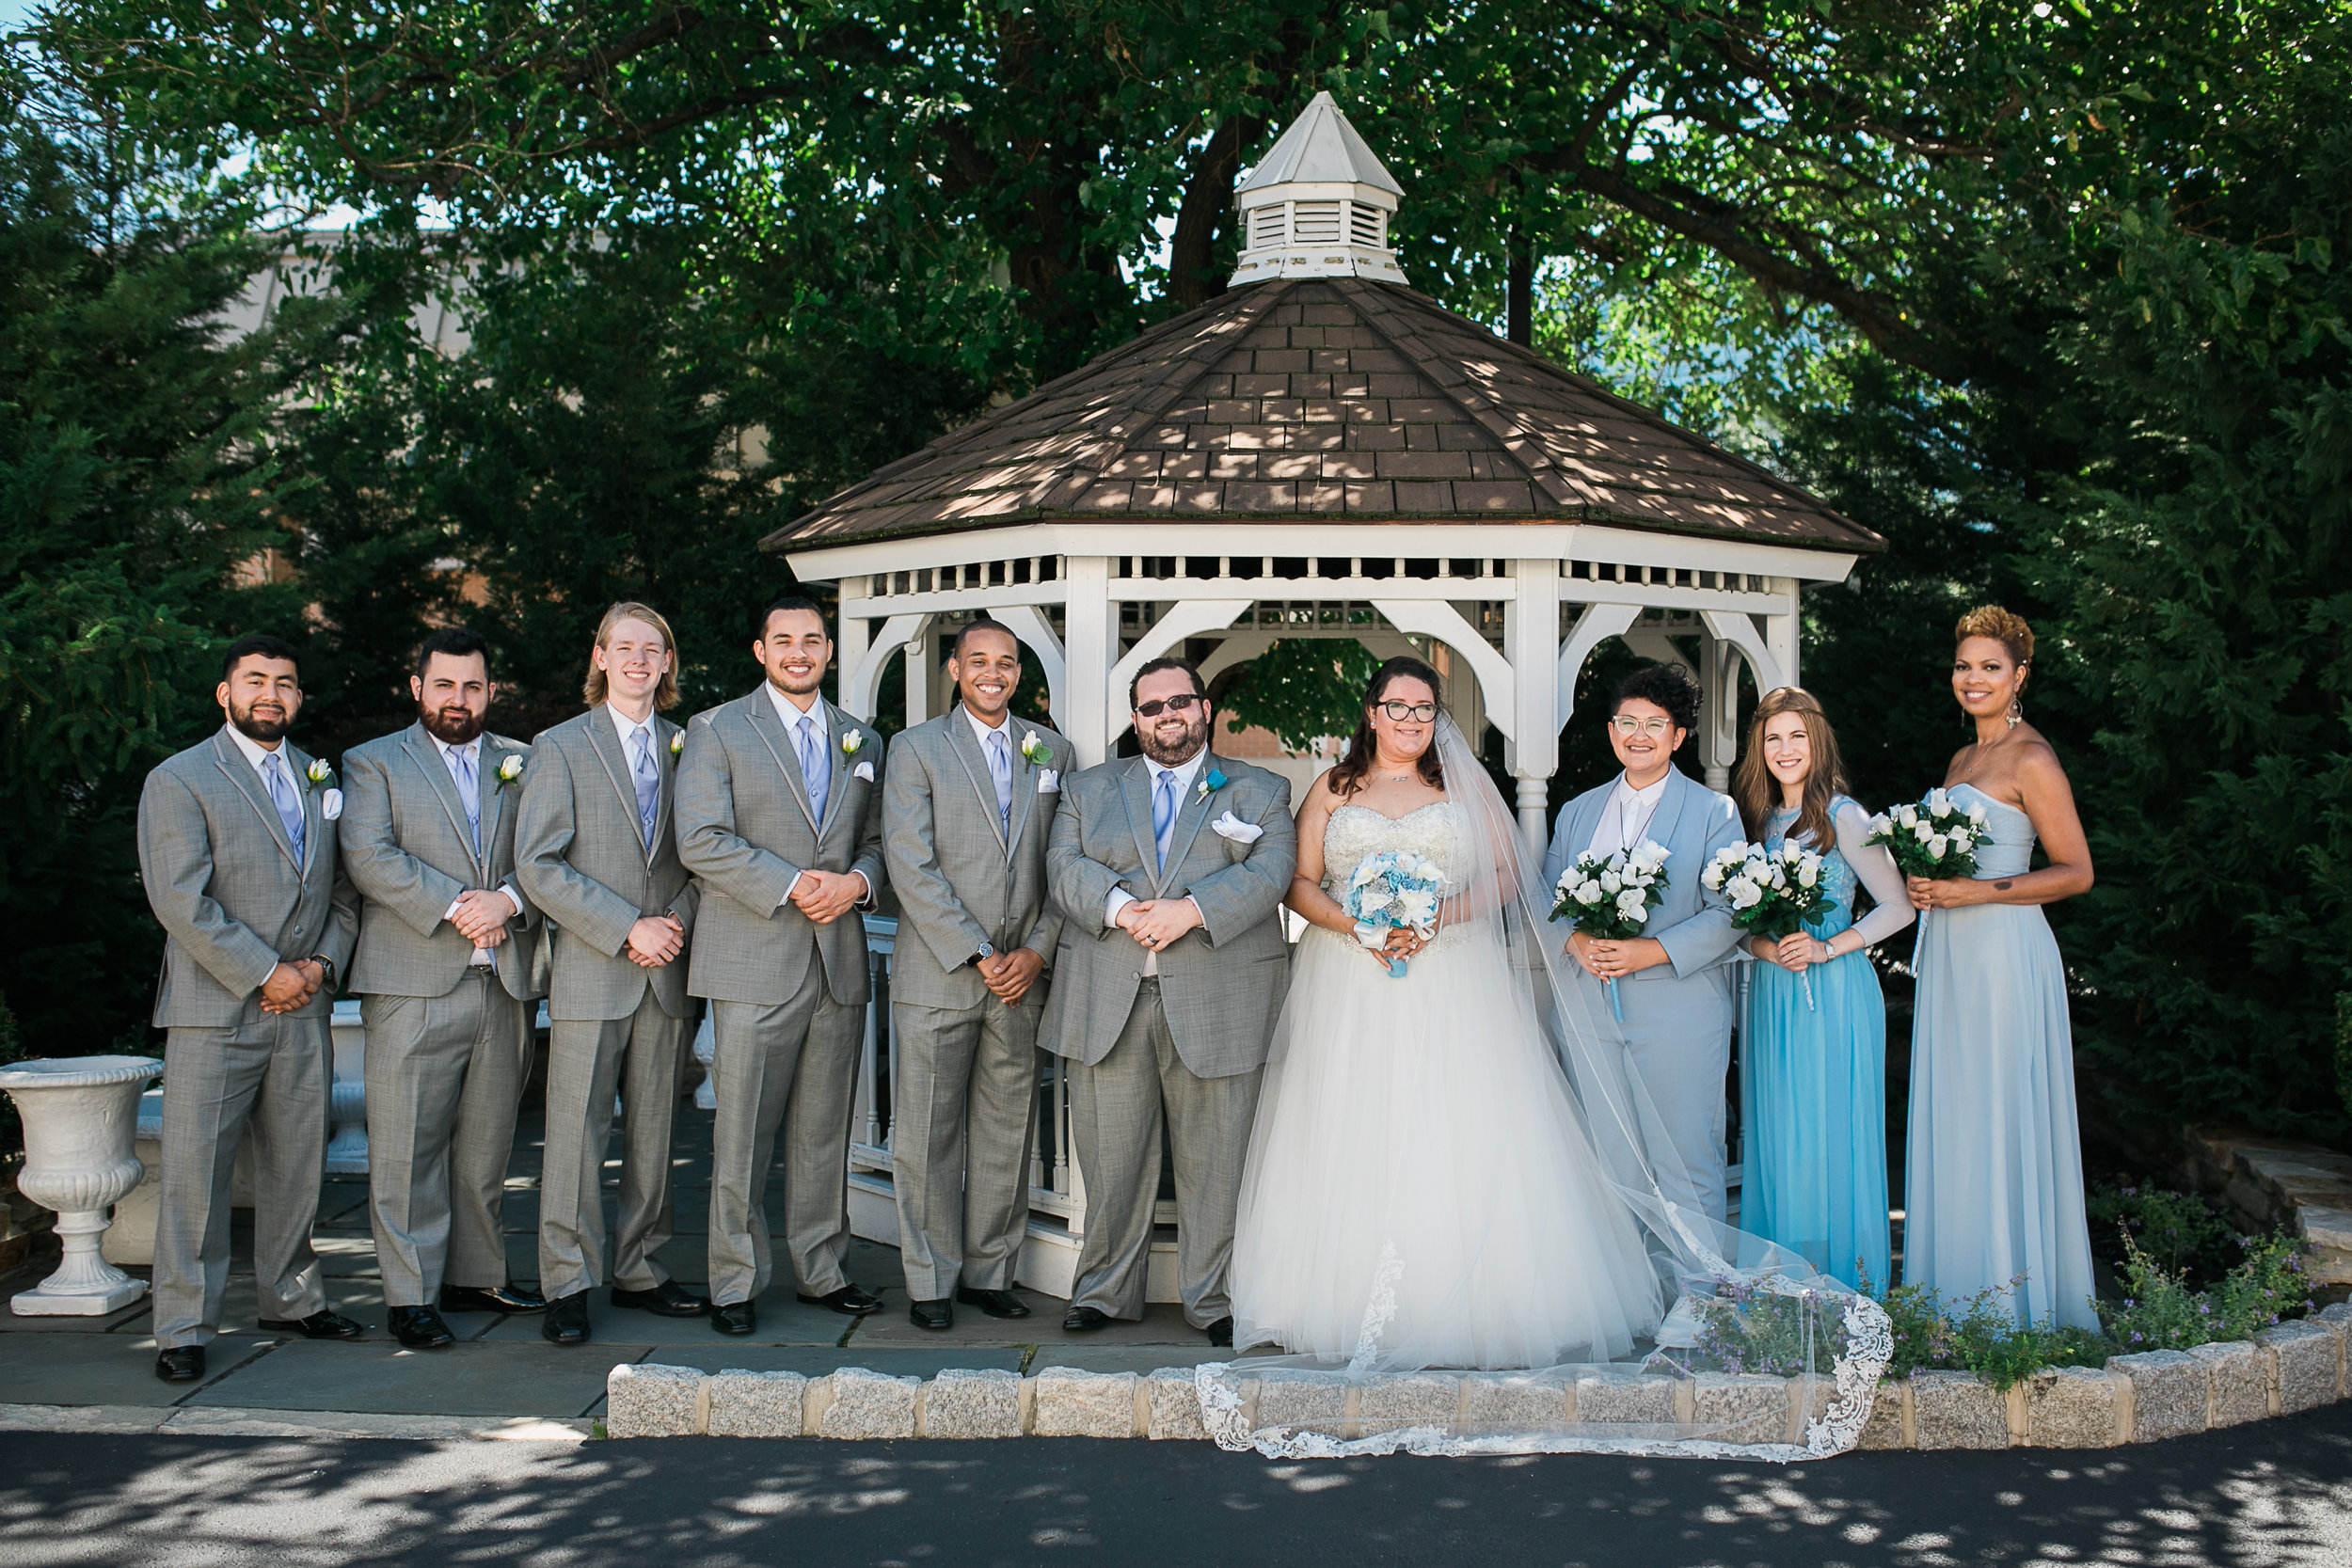 Disney Wedding New Jersey Sweet Alice Photography-1-64.jpg